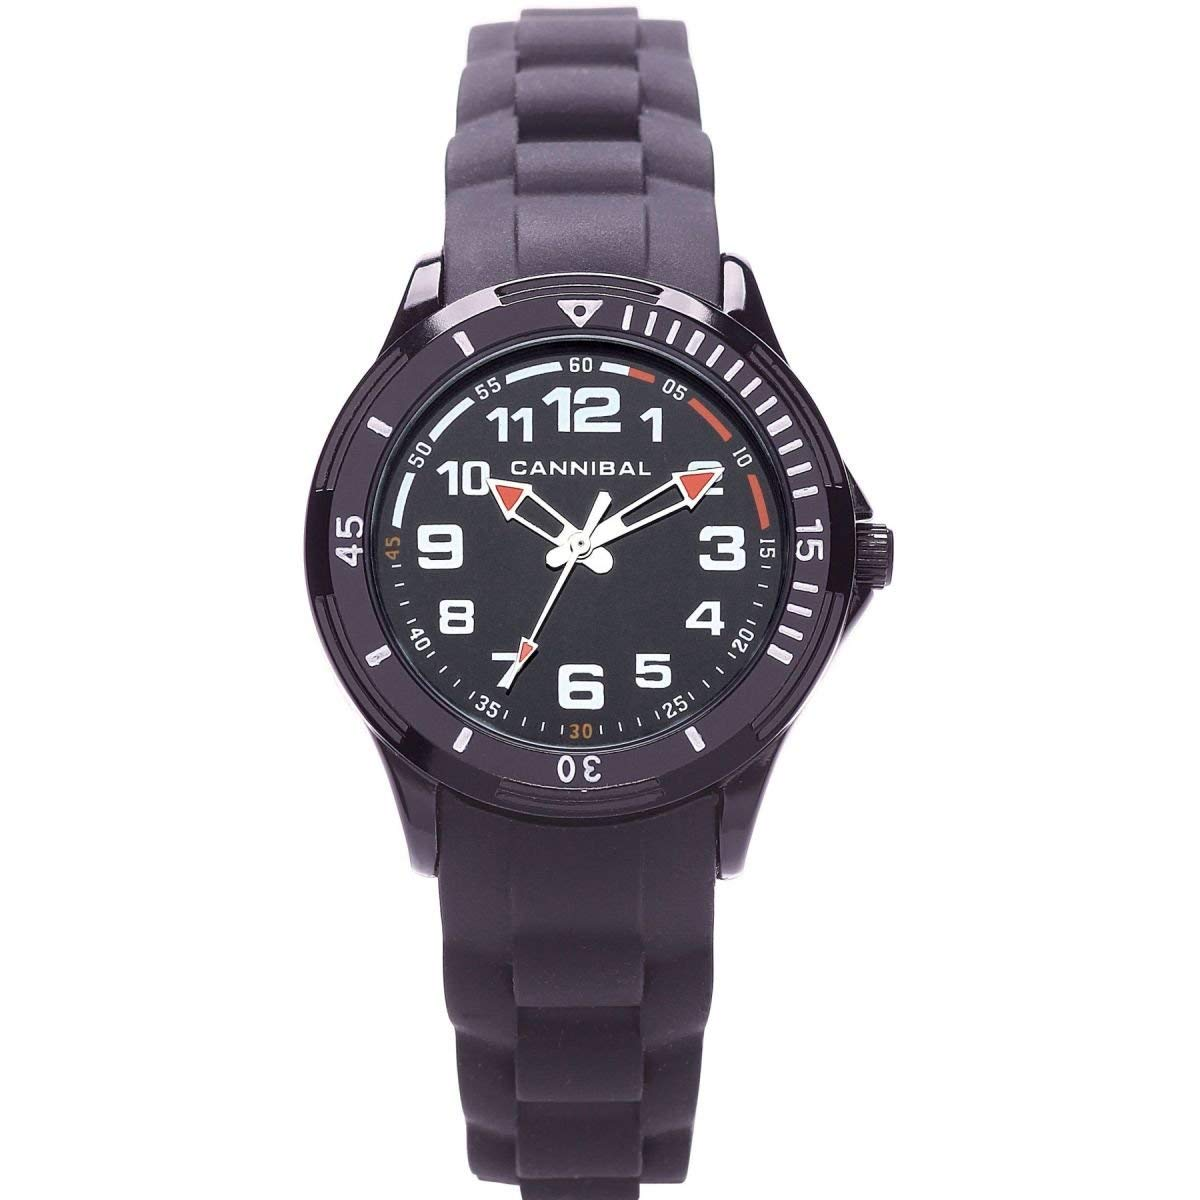 Cannibal Active Black Silicone Strap Boy's Analogue Watch CJ219-03